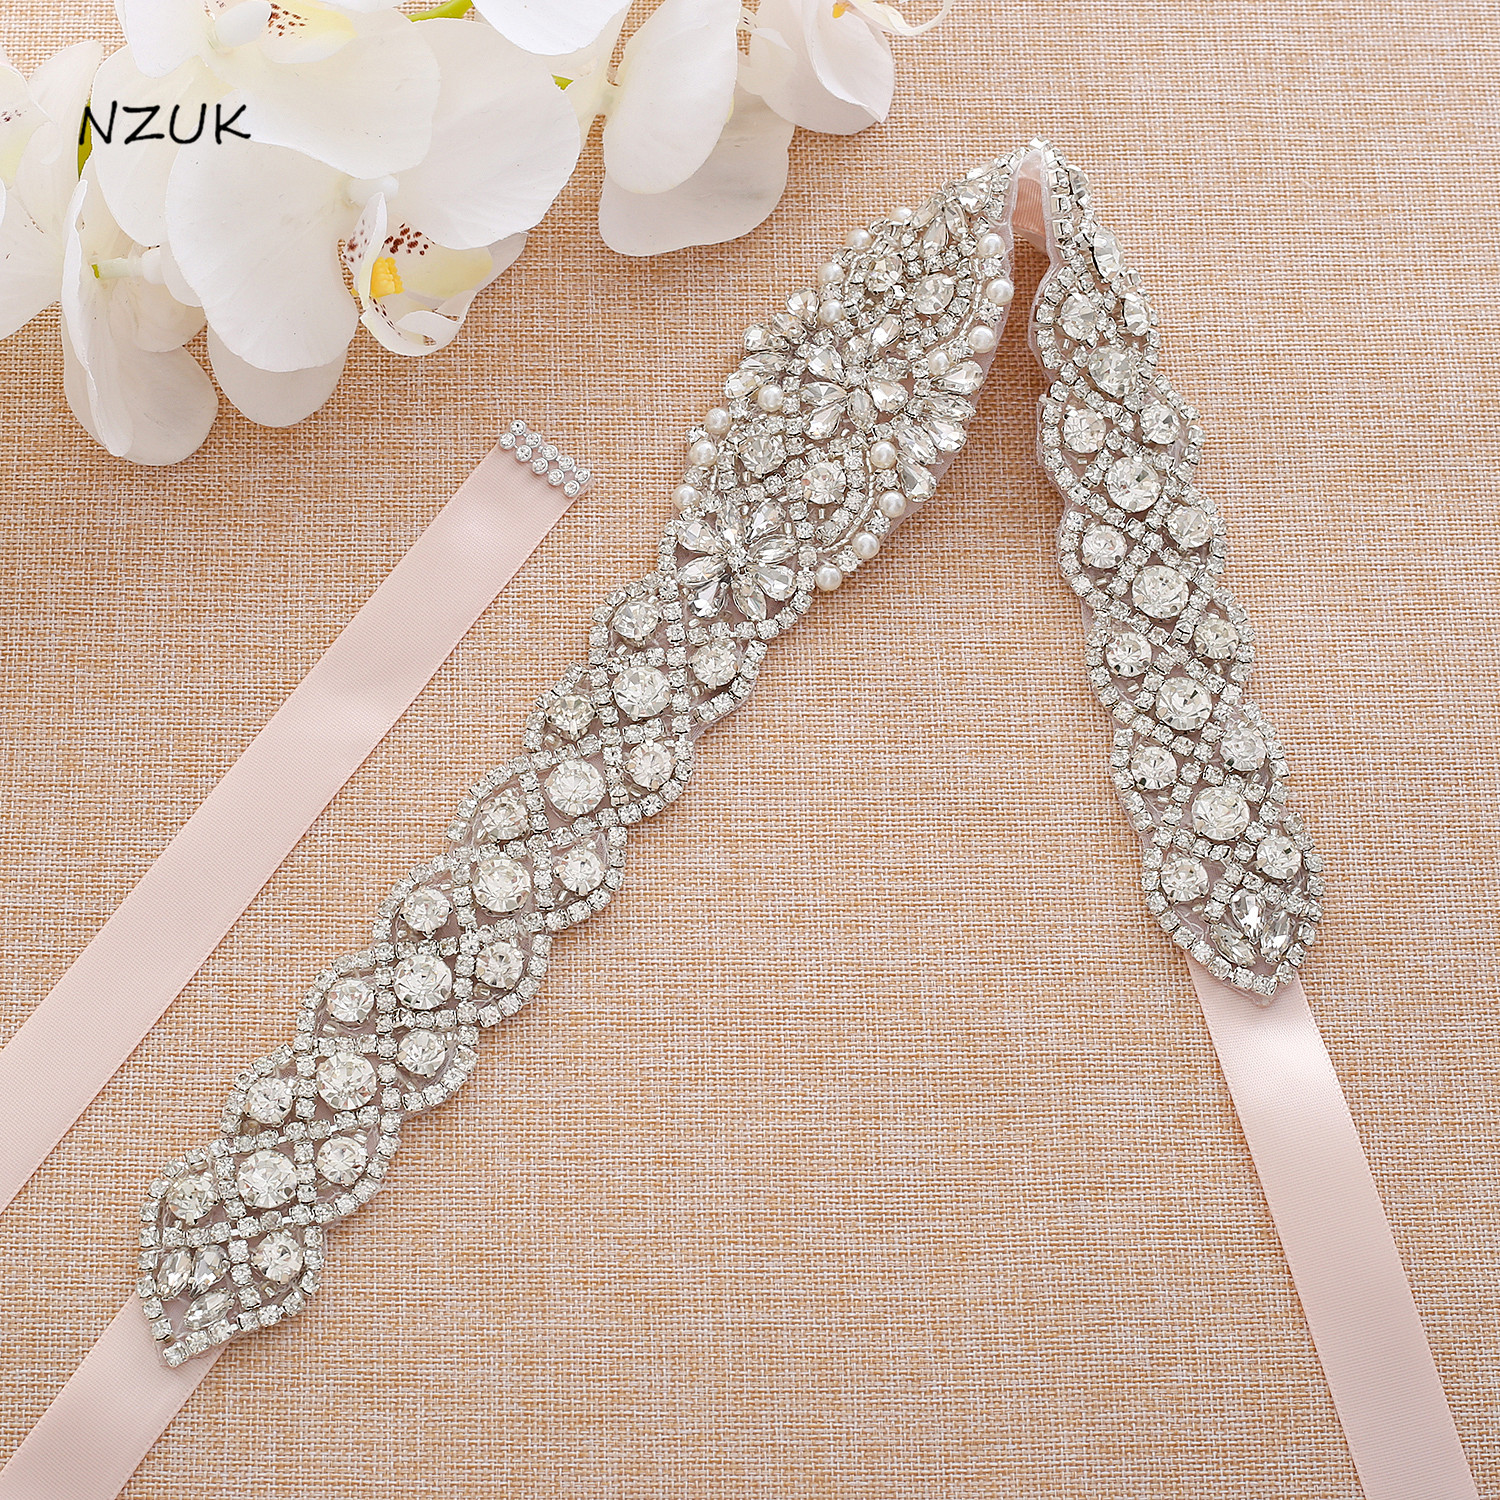 Luxurious Silver Bridal Belt  Crystal Wedding Belt With Pearls  Rhinestones Ribbons Sash For Wedding Party Gown ZZY167S